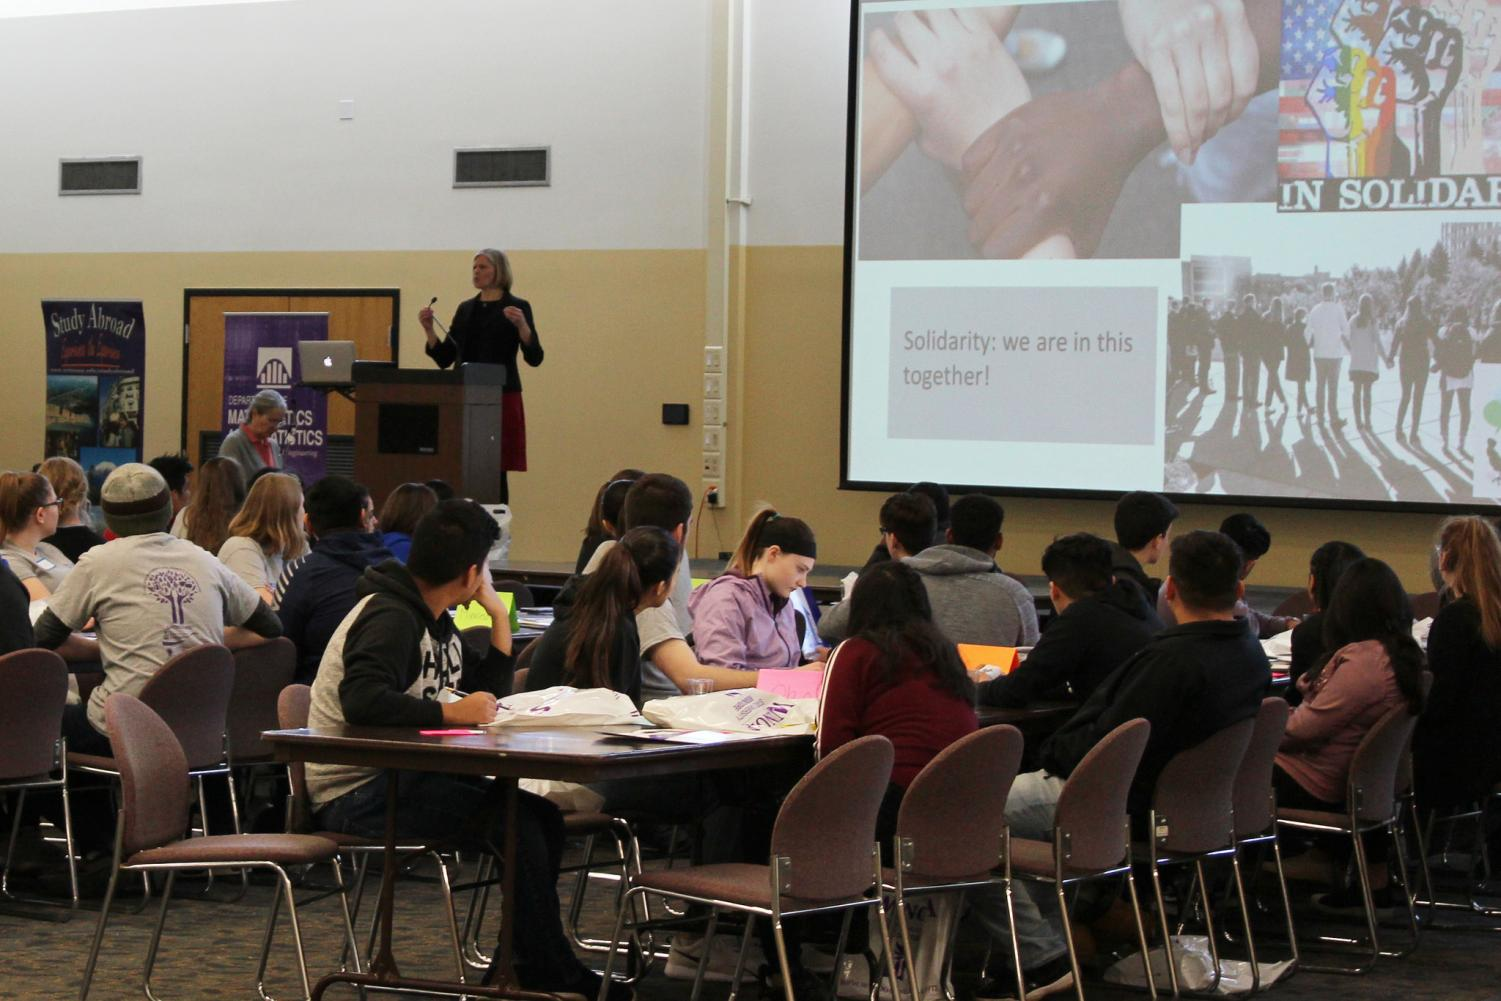 Amy Hornby Uribe begins a discussion about solidarity during Winona State's fourth annual Civic Engagement and Leadership Conference for underrepresented high school students on Wednesday, April 4 in East Hall.